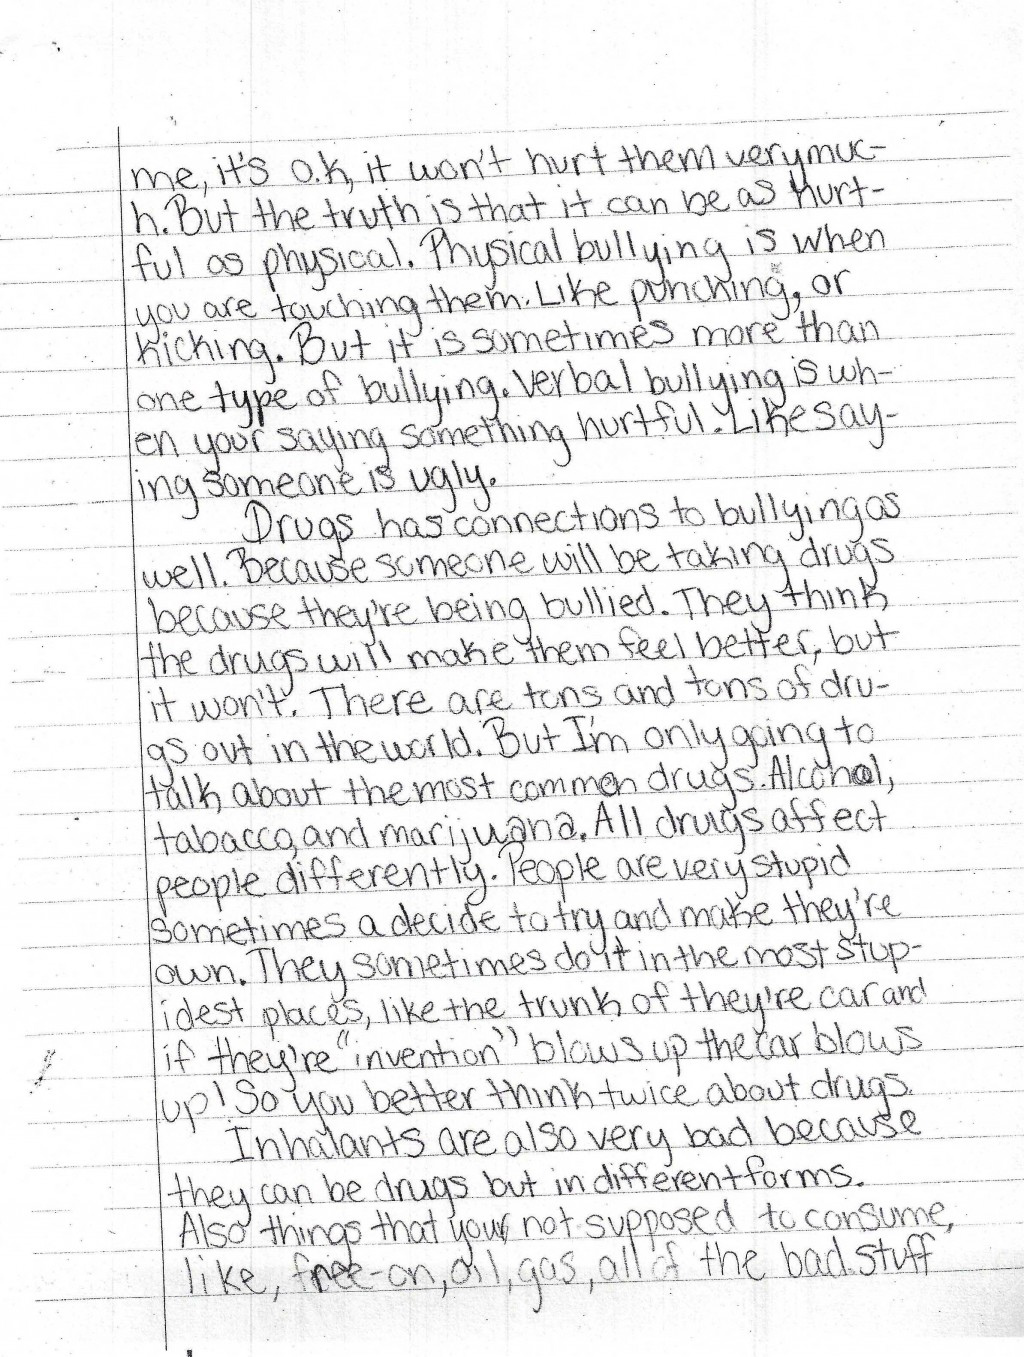 006 Harris Page2 0 Essay About Bullying Best Introduction In School Argumentative Brainly Large